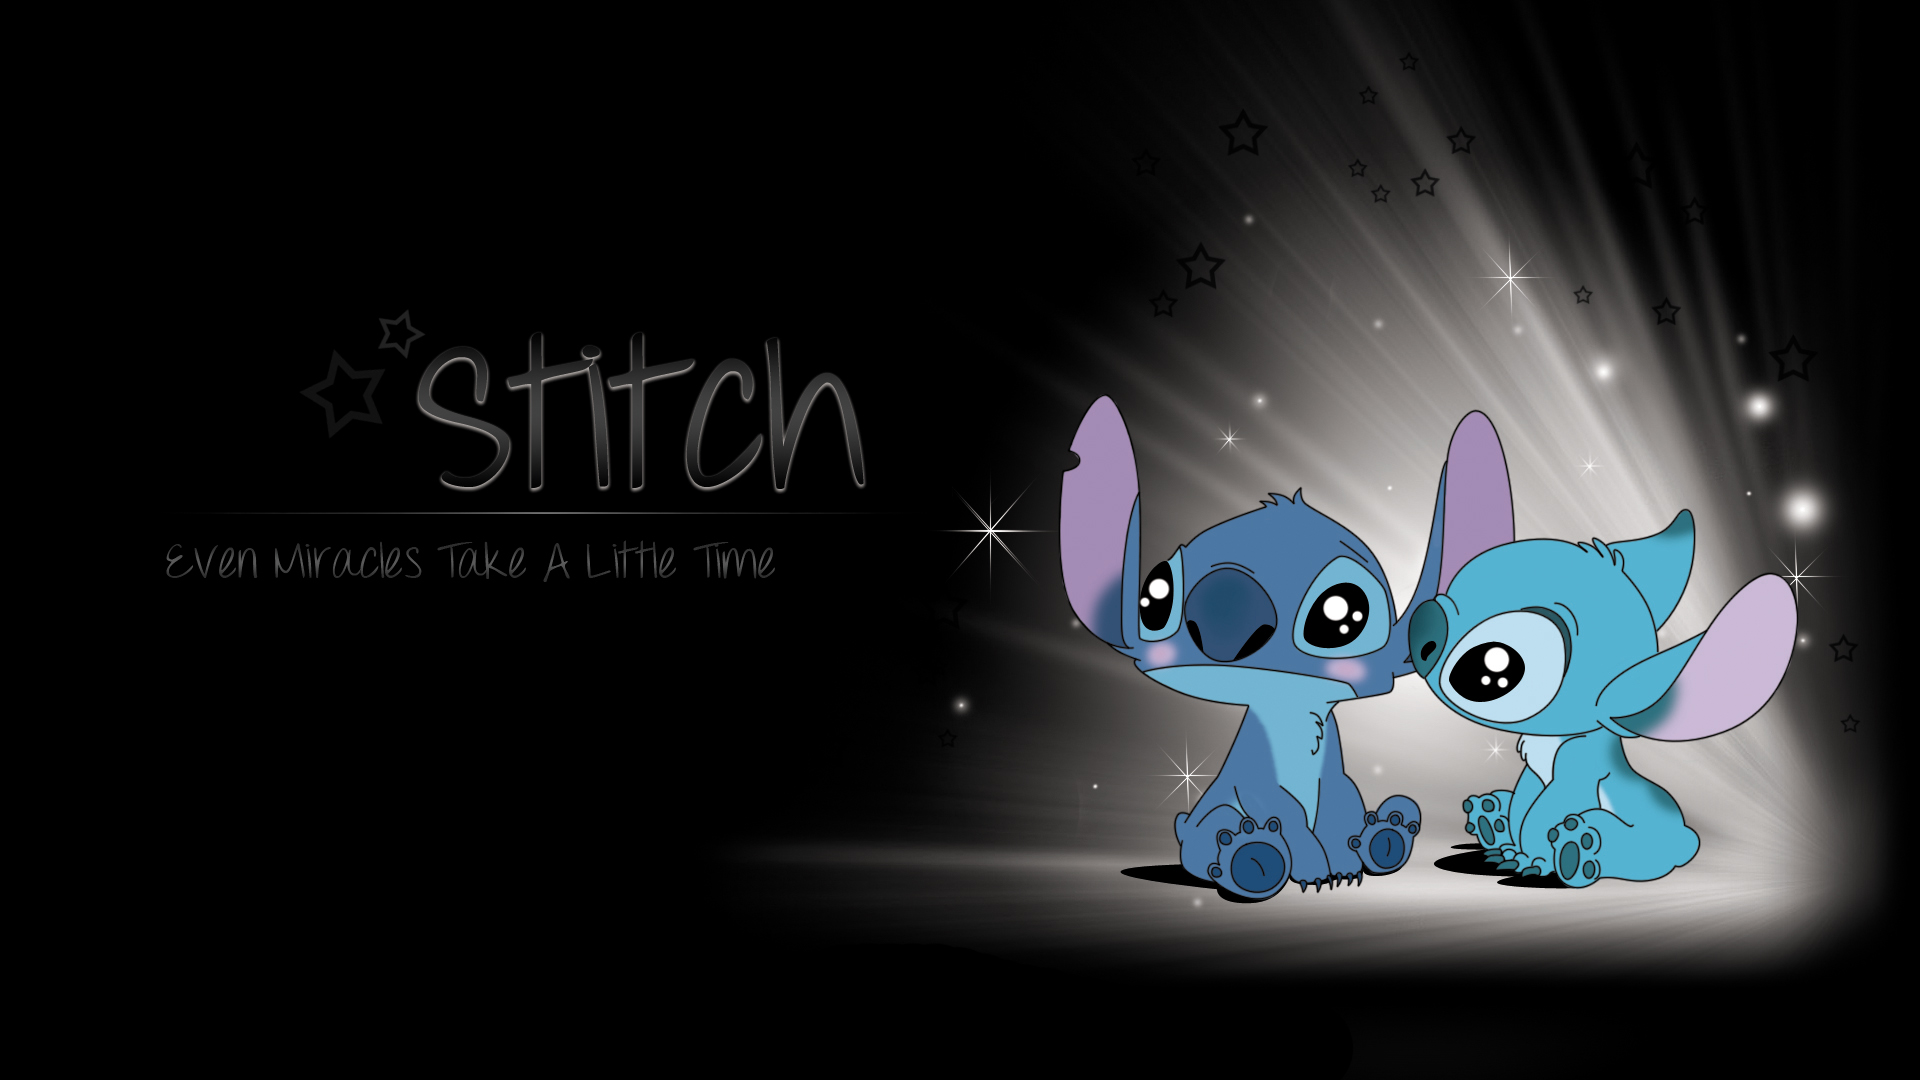 Cute stitch wallpaper HD. Desktop download stitch backgrounds ...